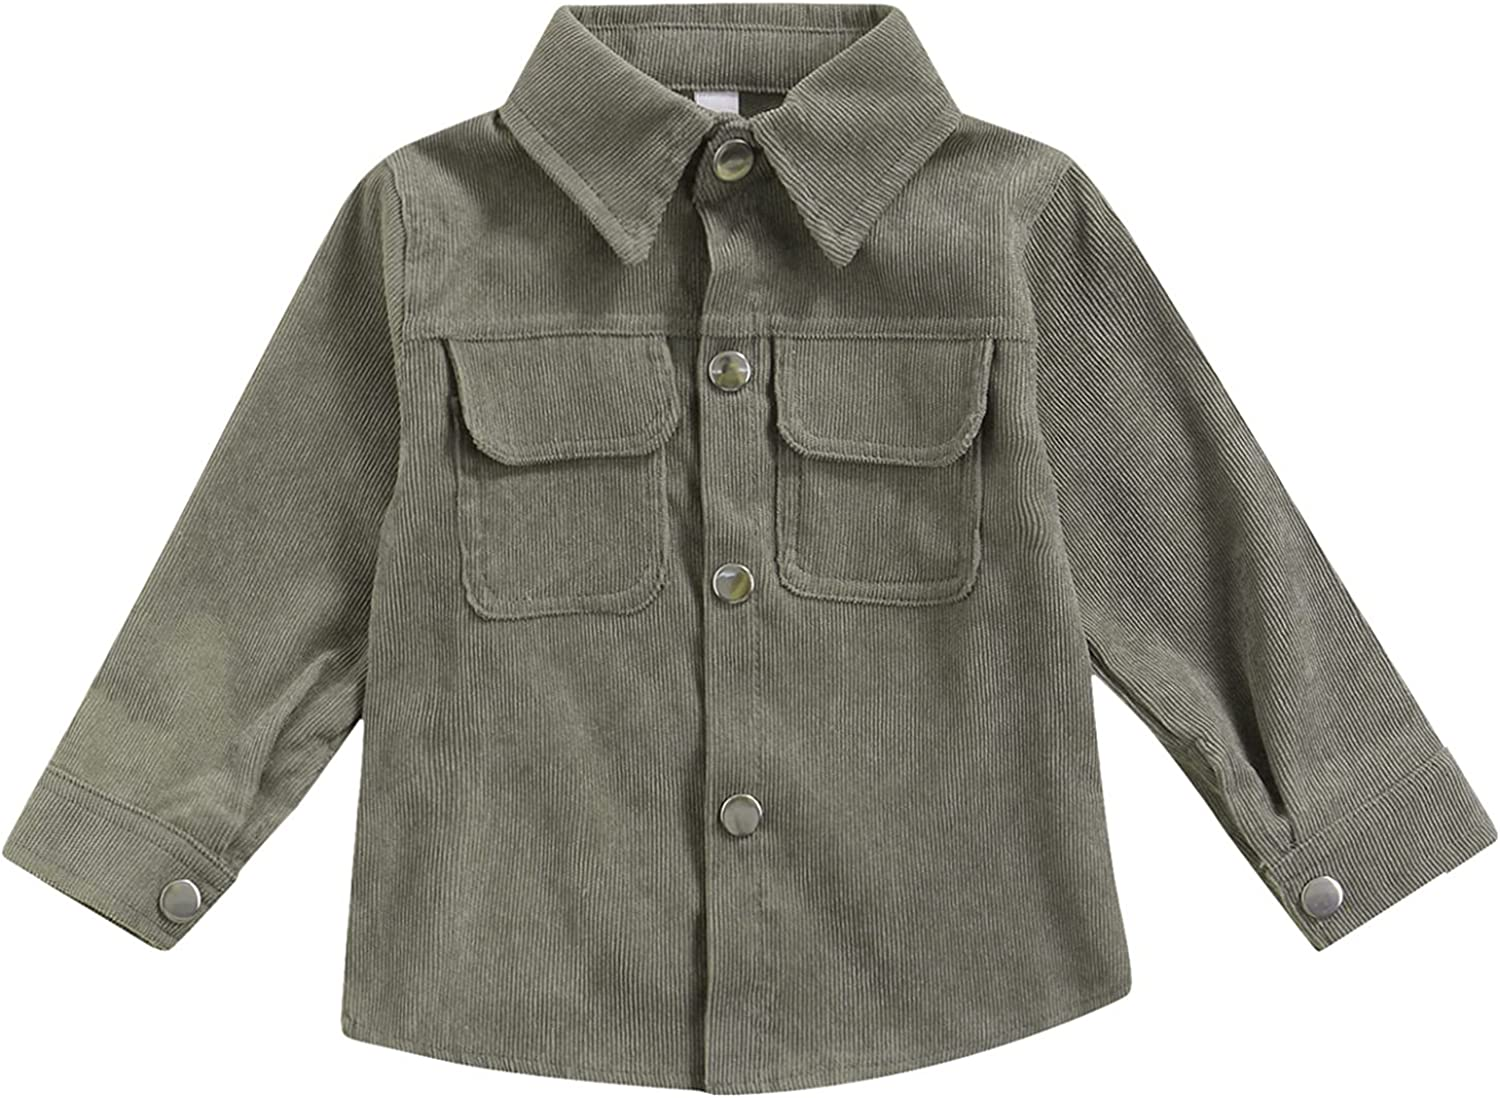 1-6T New Free Shipping Toddler Boy Girl Corduroy Jacket Button Down outlet Coat Outwear S